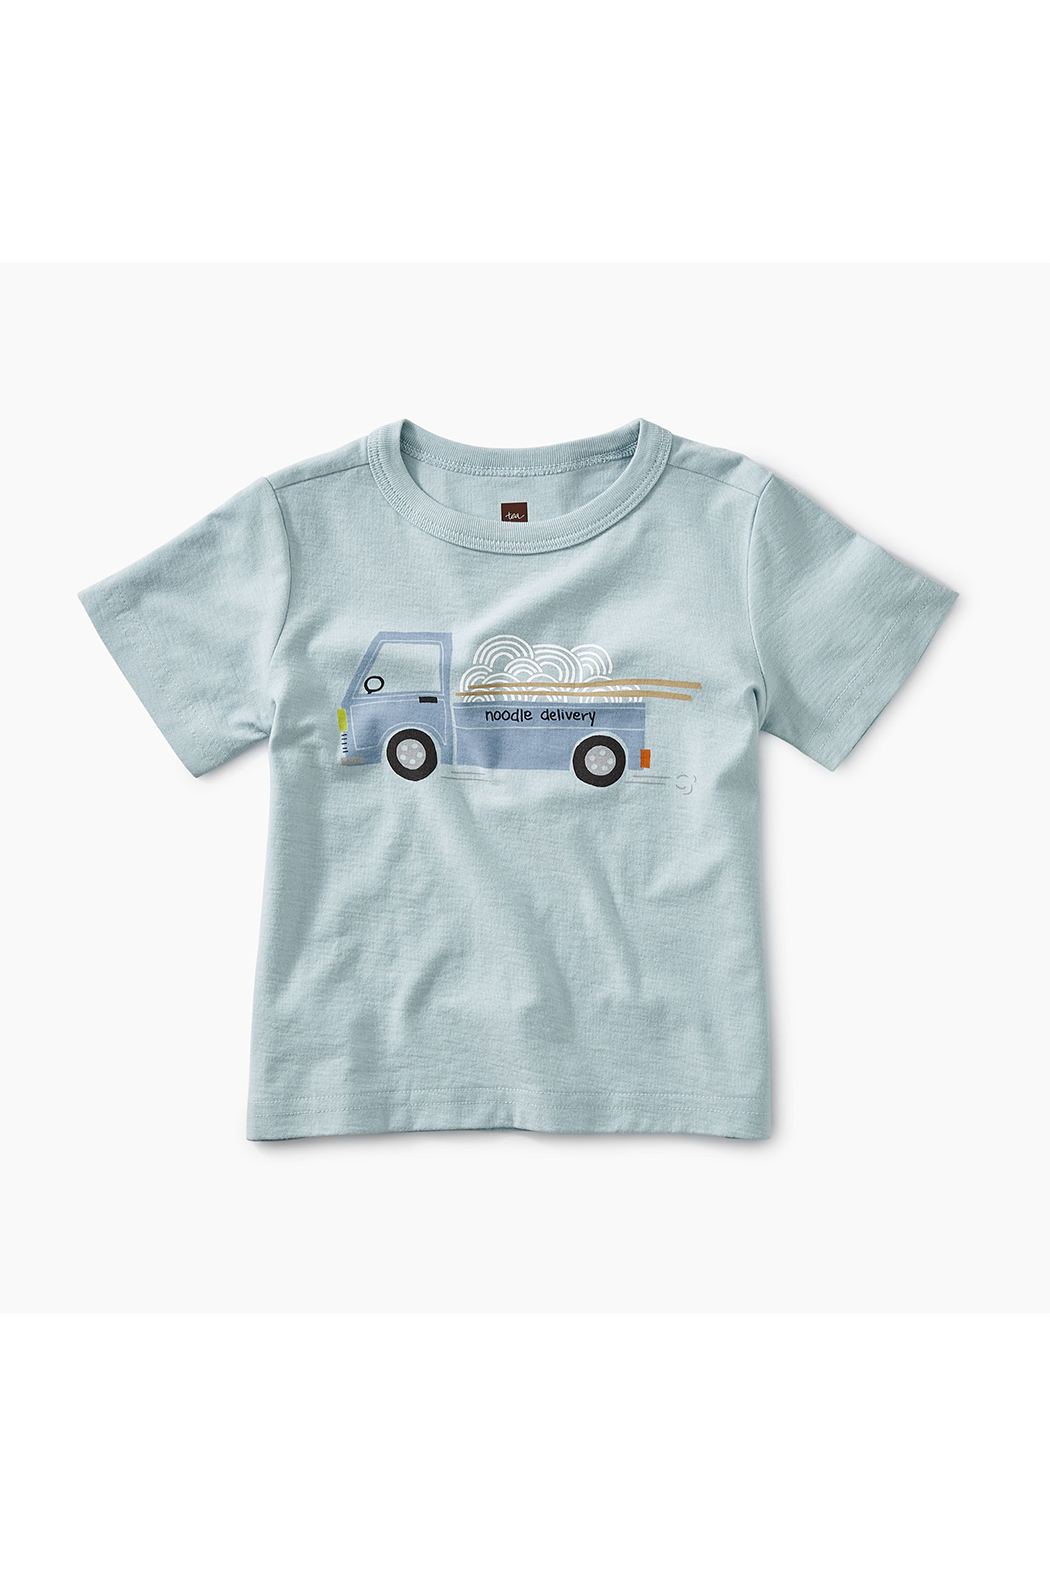 Tea Collection Noodle Truck Baby Graphic Tee - Main Image